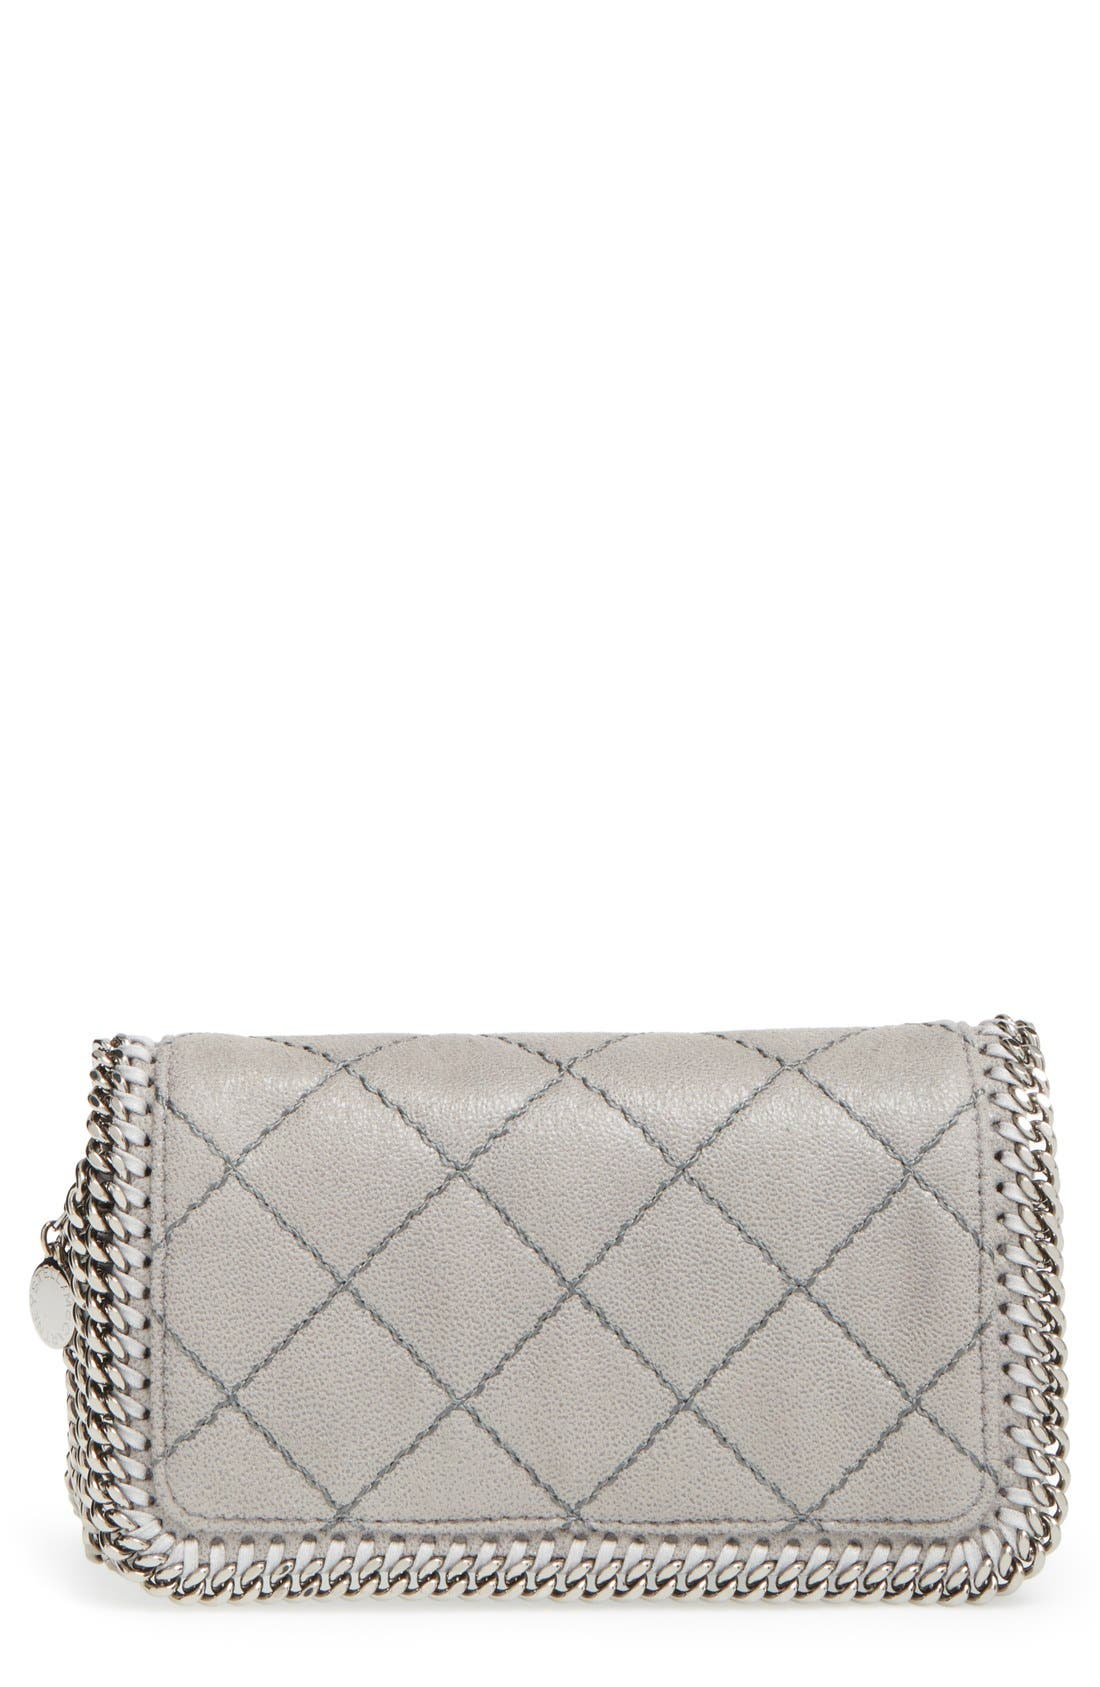 Alternate Image 1 Selected - Stella McCartney 'Falabella' Quilted Faux Leather Crossbody Bag